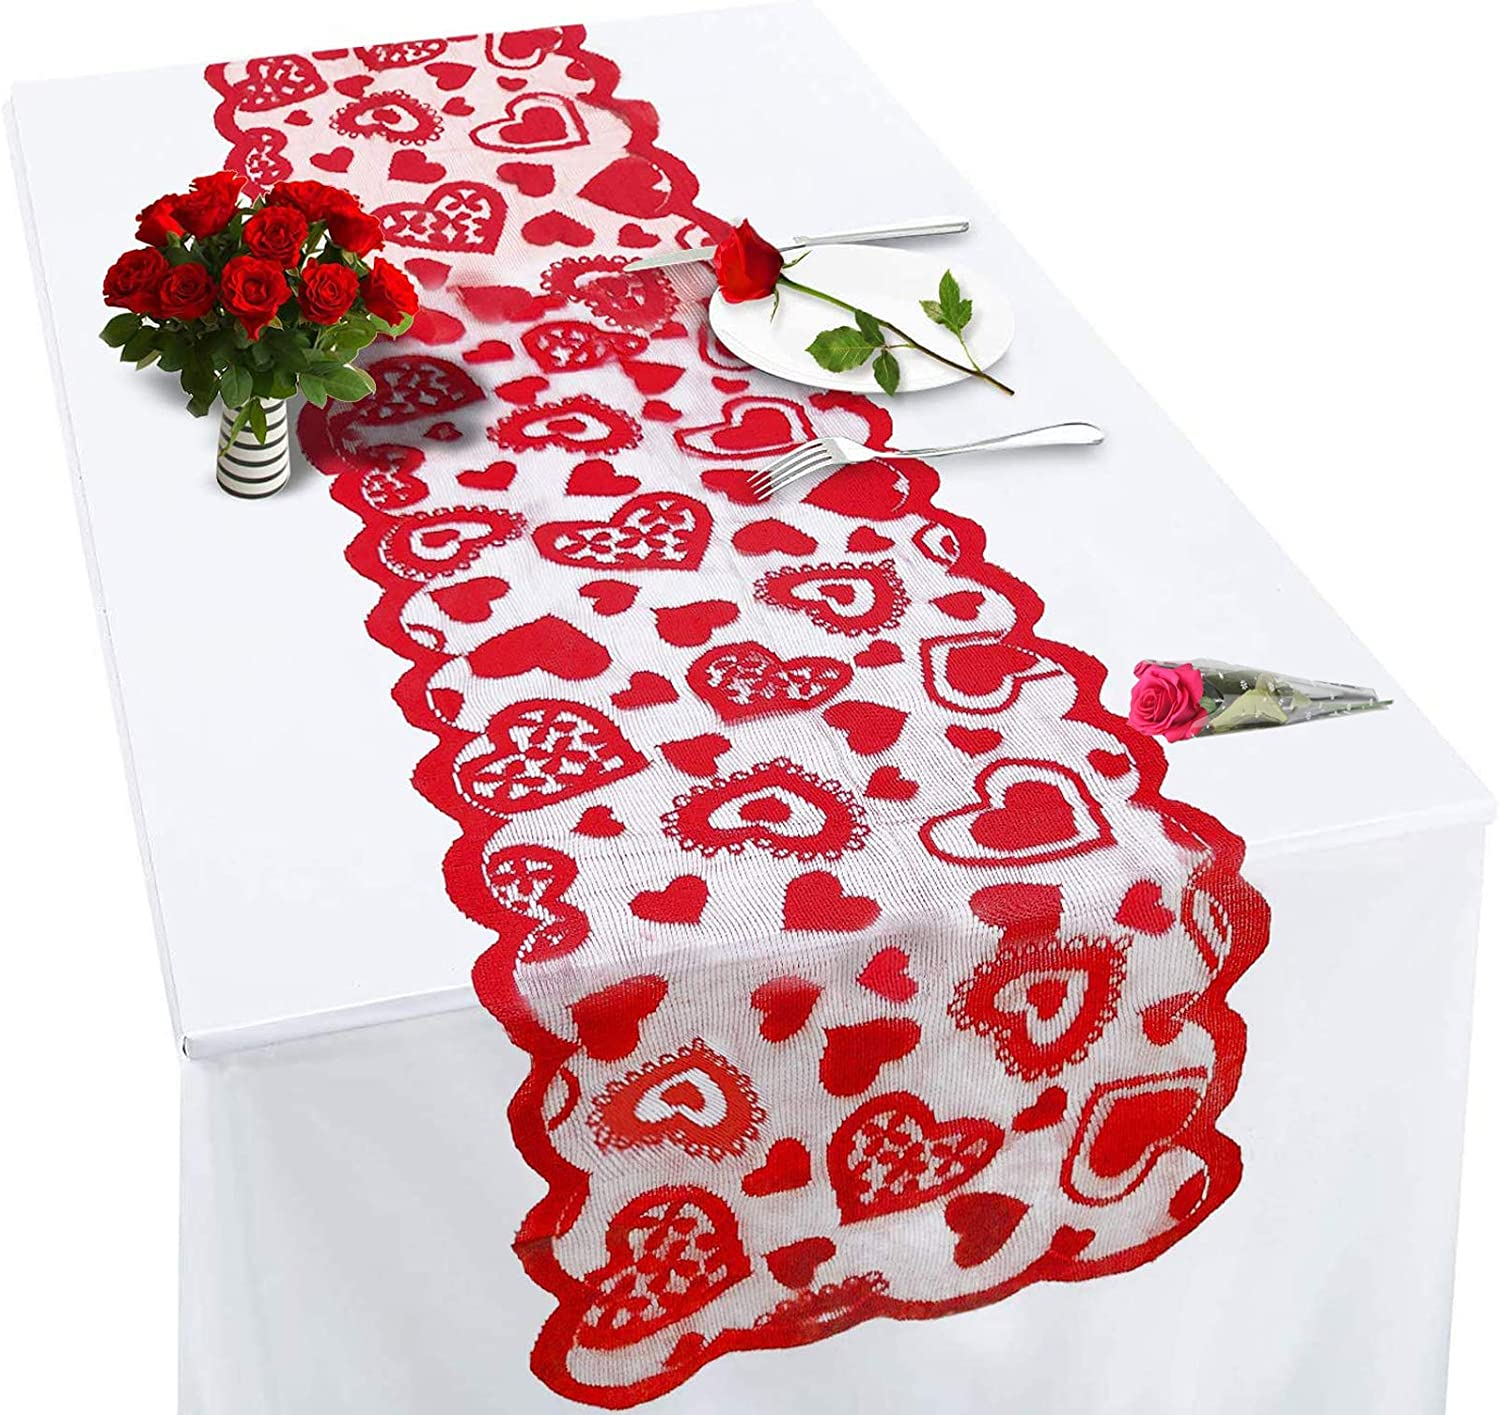 TEMADENT from Daughter or Son Valentines Day Decor - Red, 13 x 72Inch Lace Love Valentines Day Table Runner for Home Wedding Party, Valentines Decor, Valentines Day Table Decorations (1Pack)